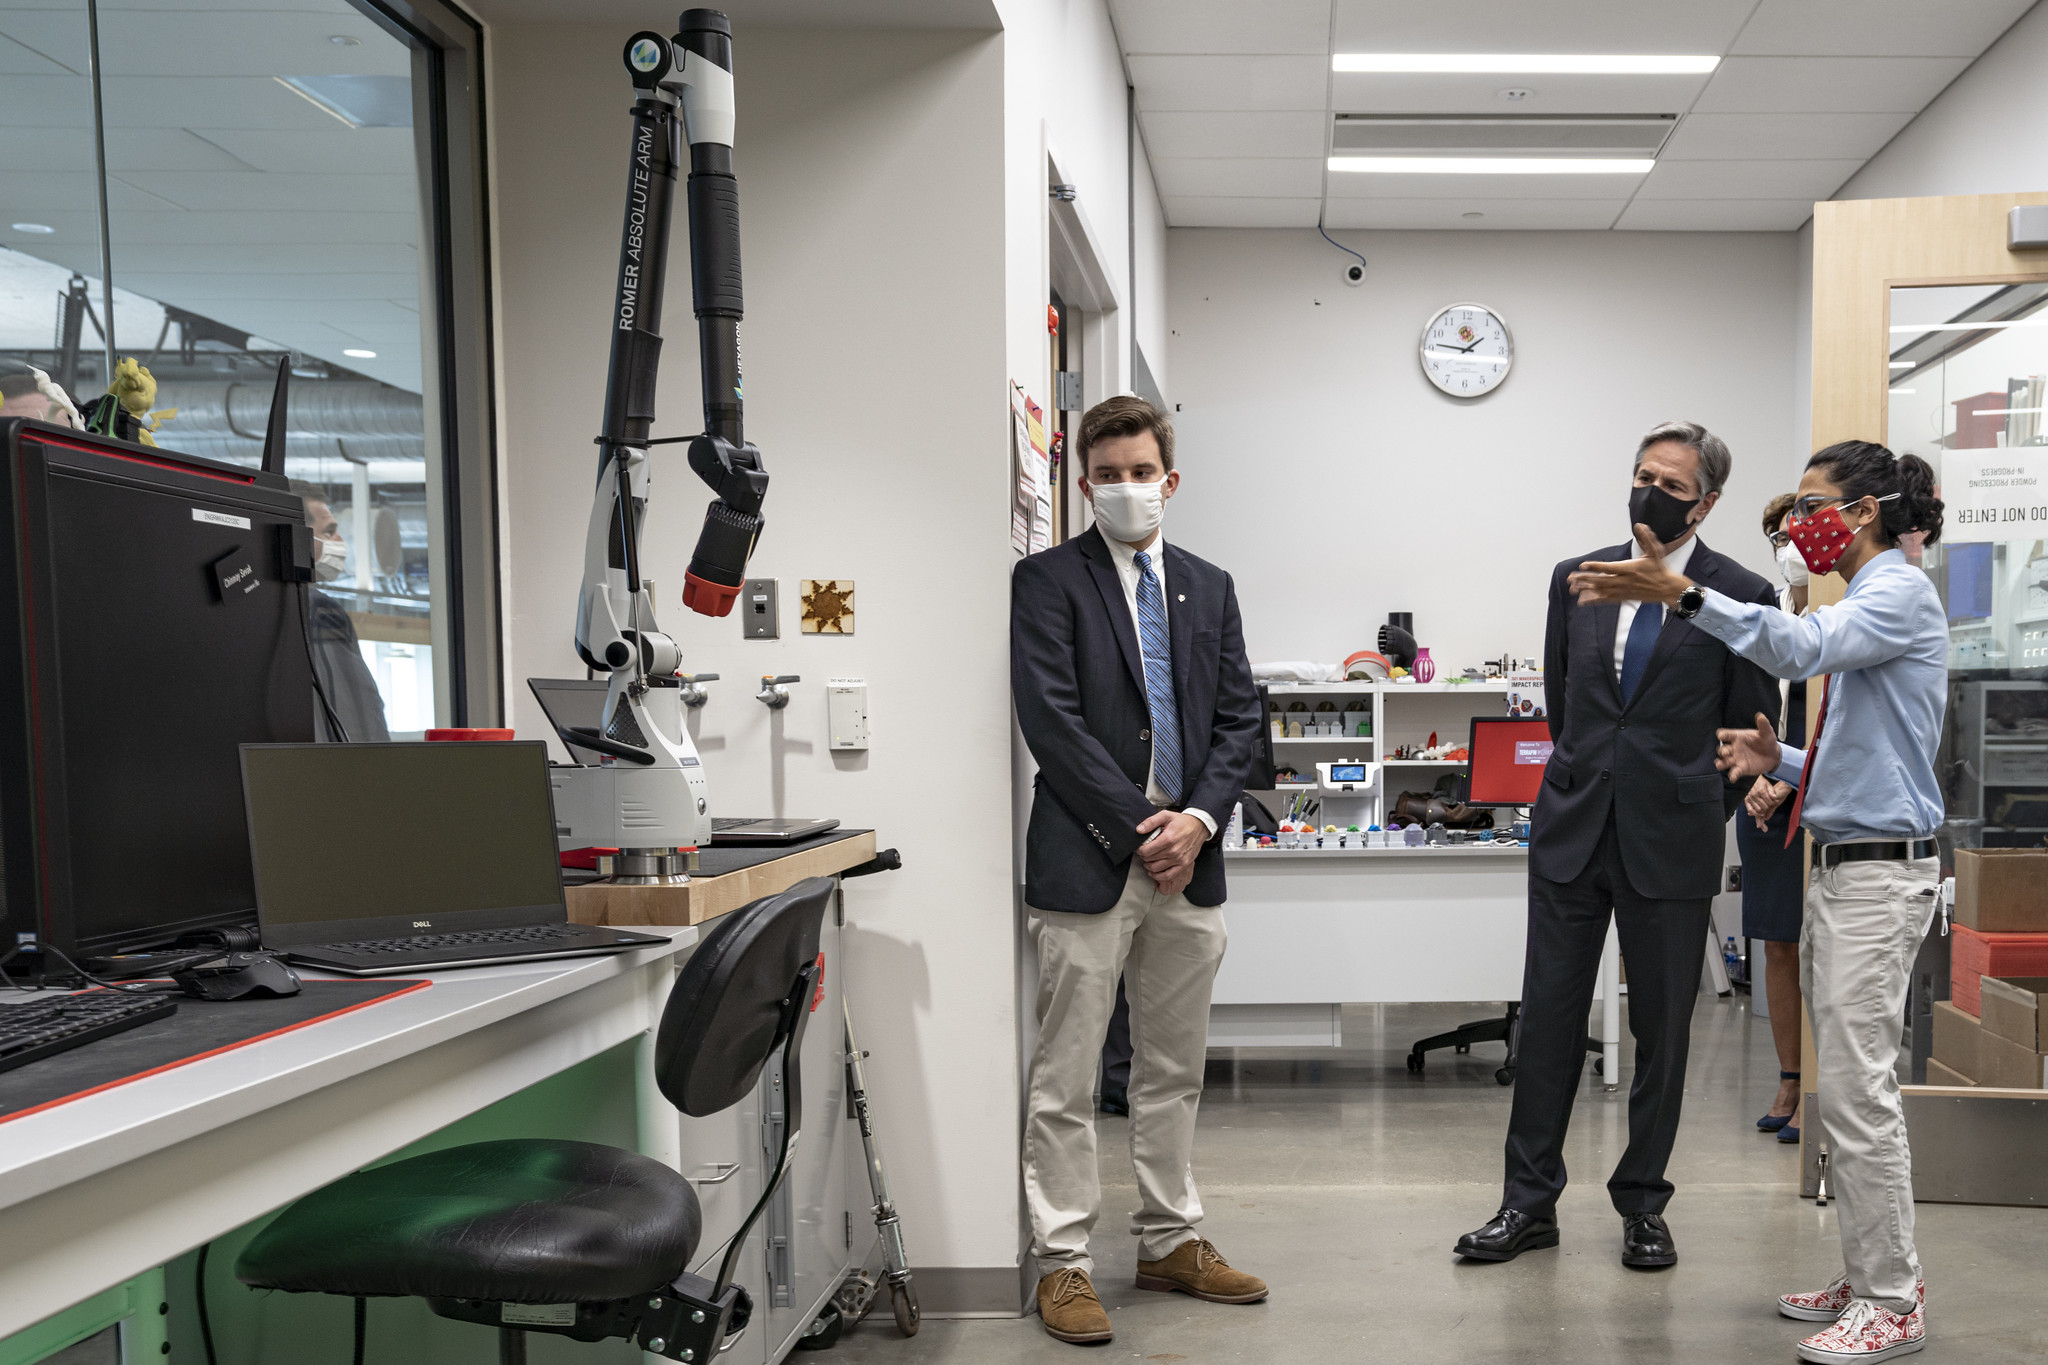 Secretary Blinken Tours the Advanced Fabrication Lab at the University of Maryland's A. James Clark School of Engineering